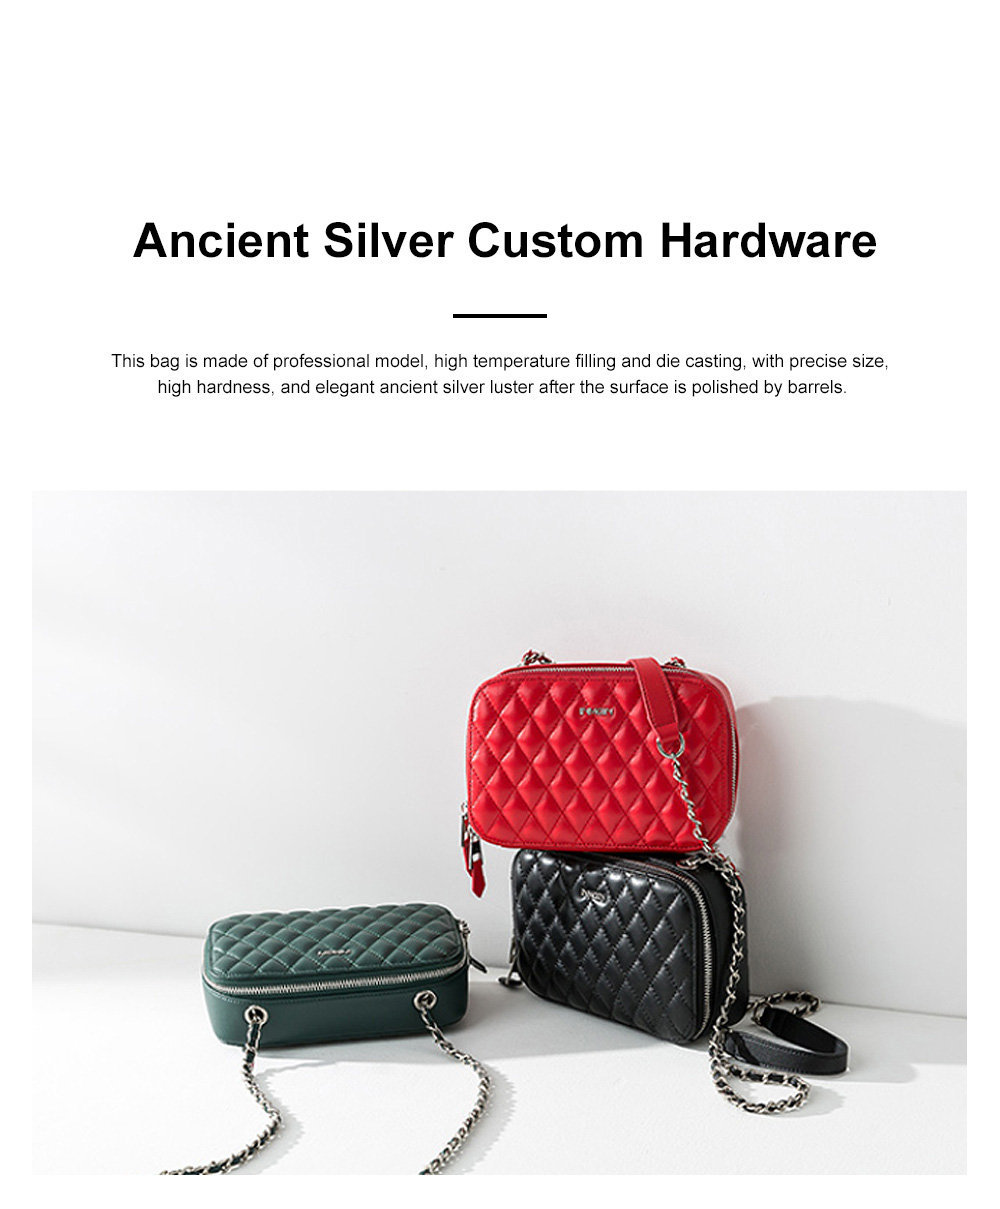 Inman Lady Leather Bag Spring and Autumn Literature Style Diamond Small Square Bag Chain Bag Tide Bag Lady Sheepskin Diagonal Bag 3